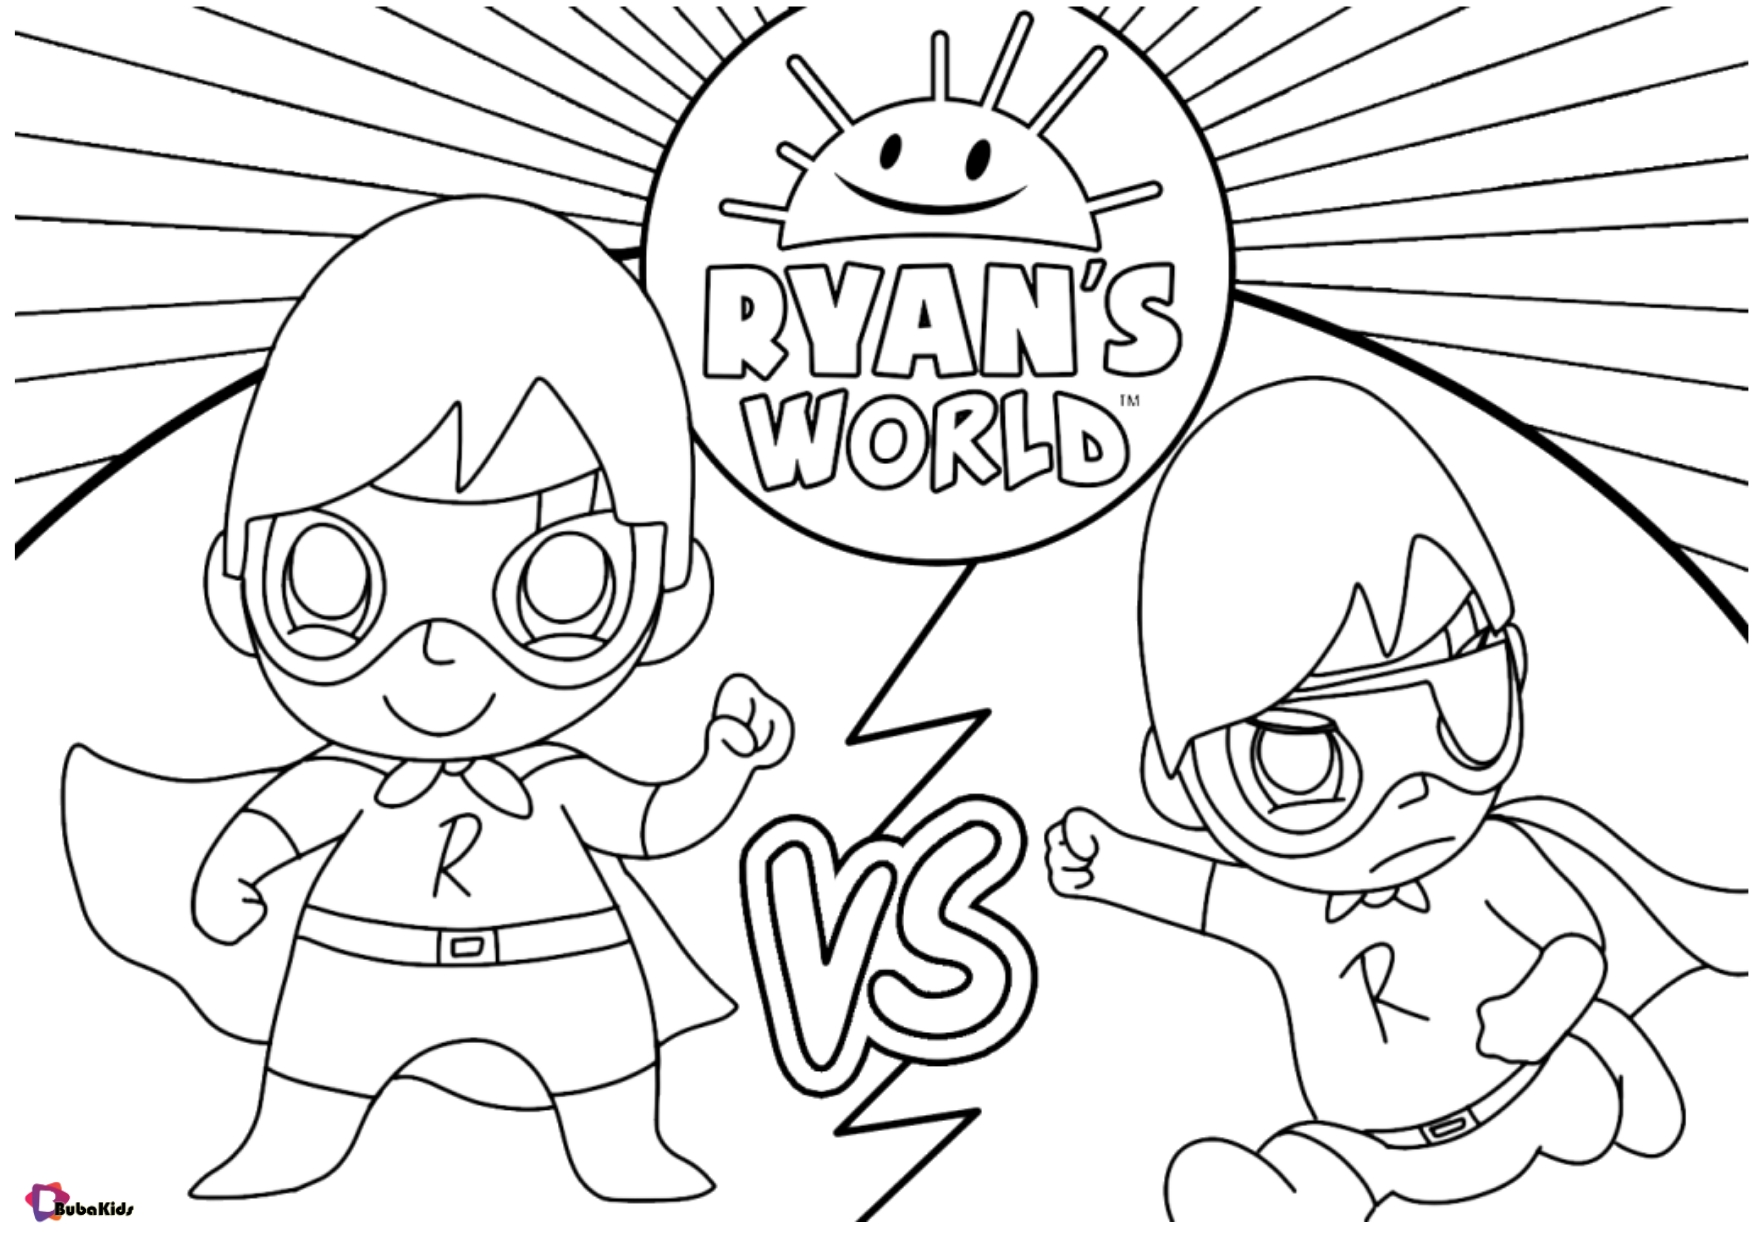 Free download Ryan's World coloring page for kids Wallpaper